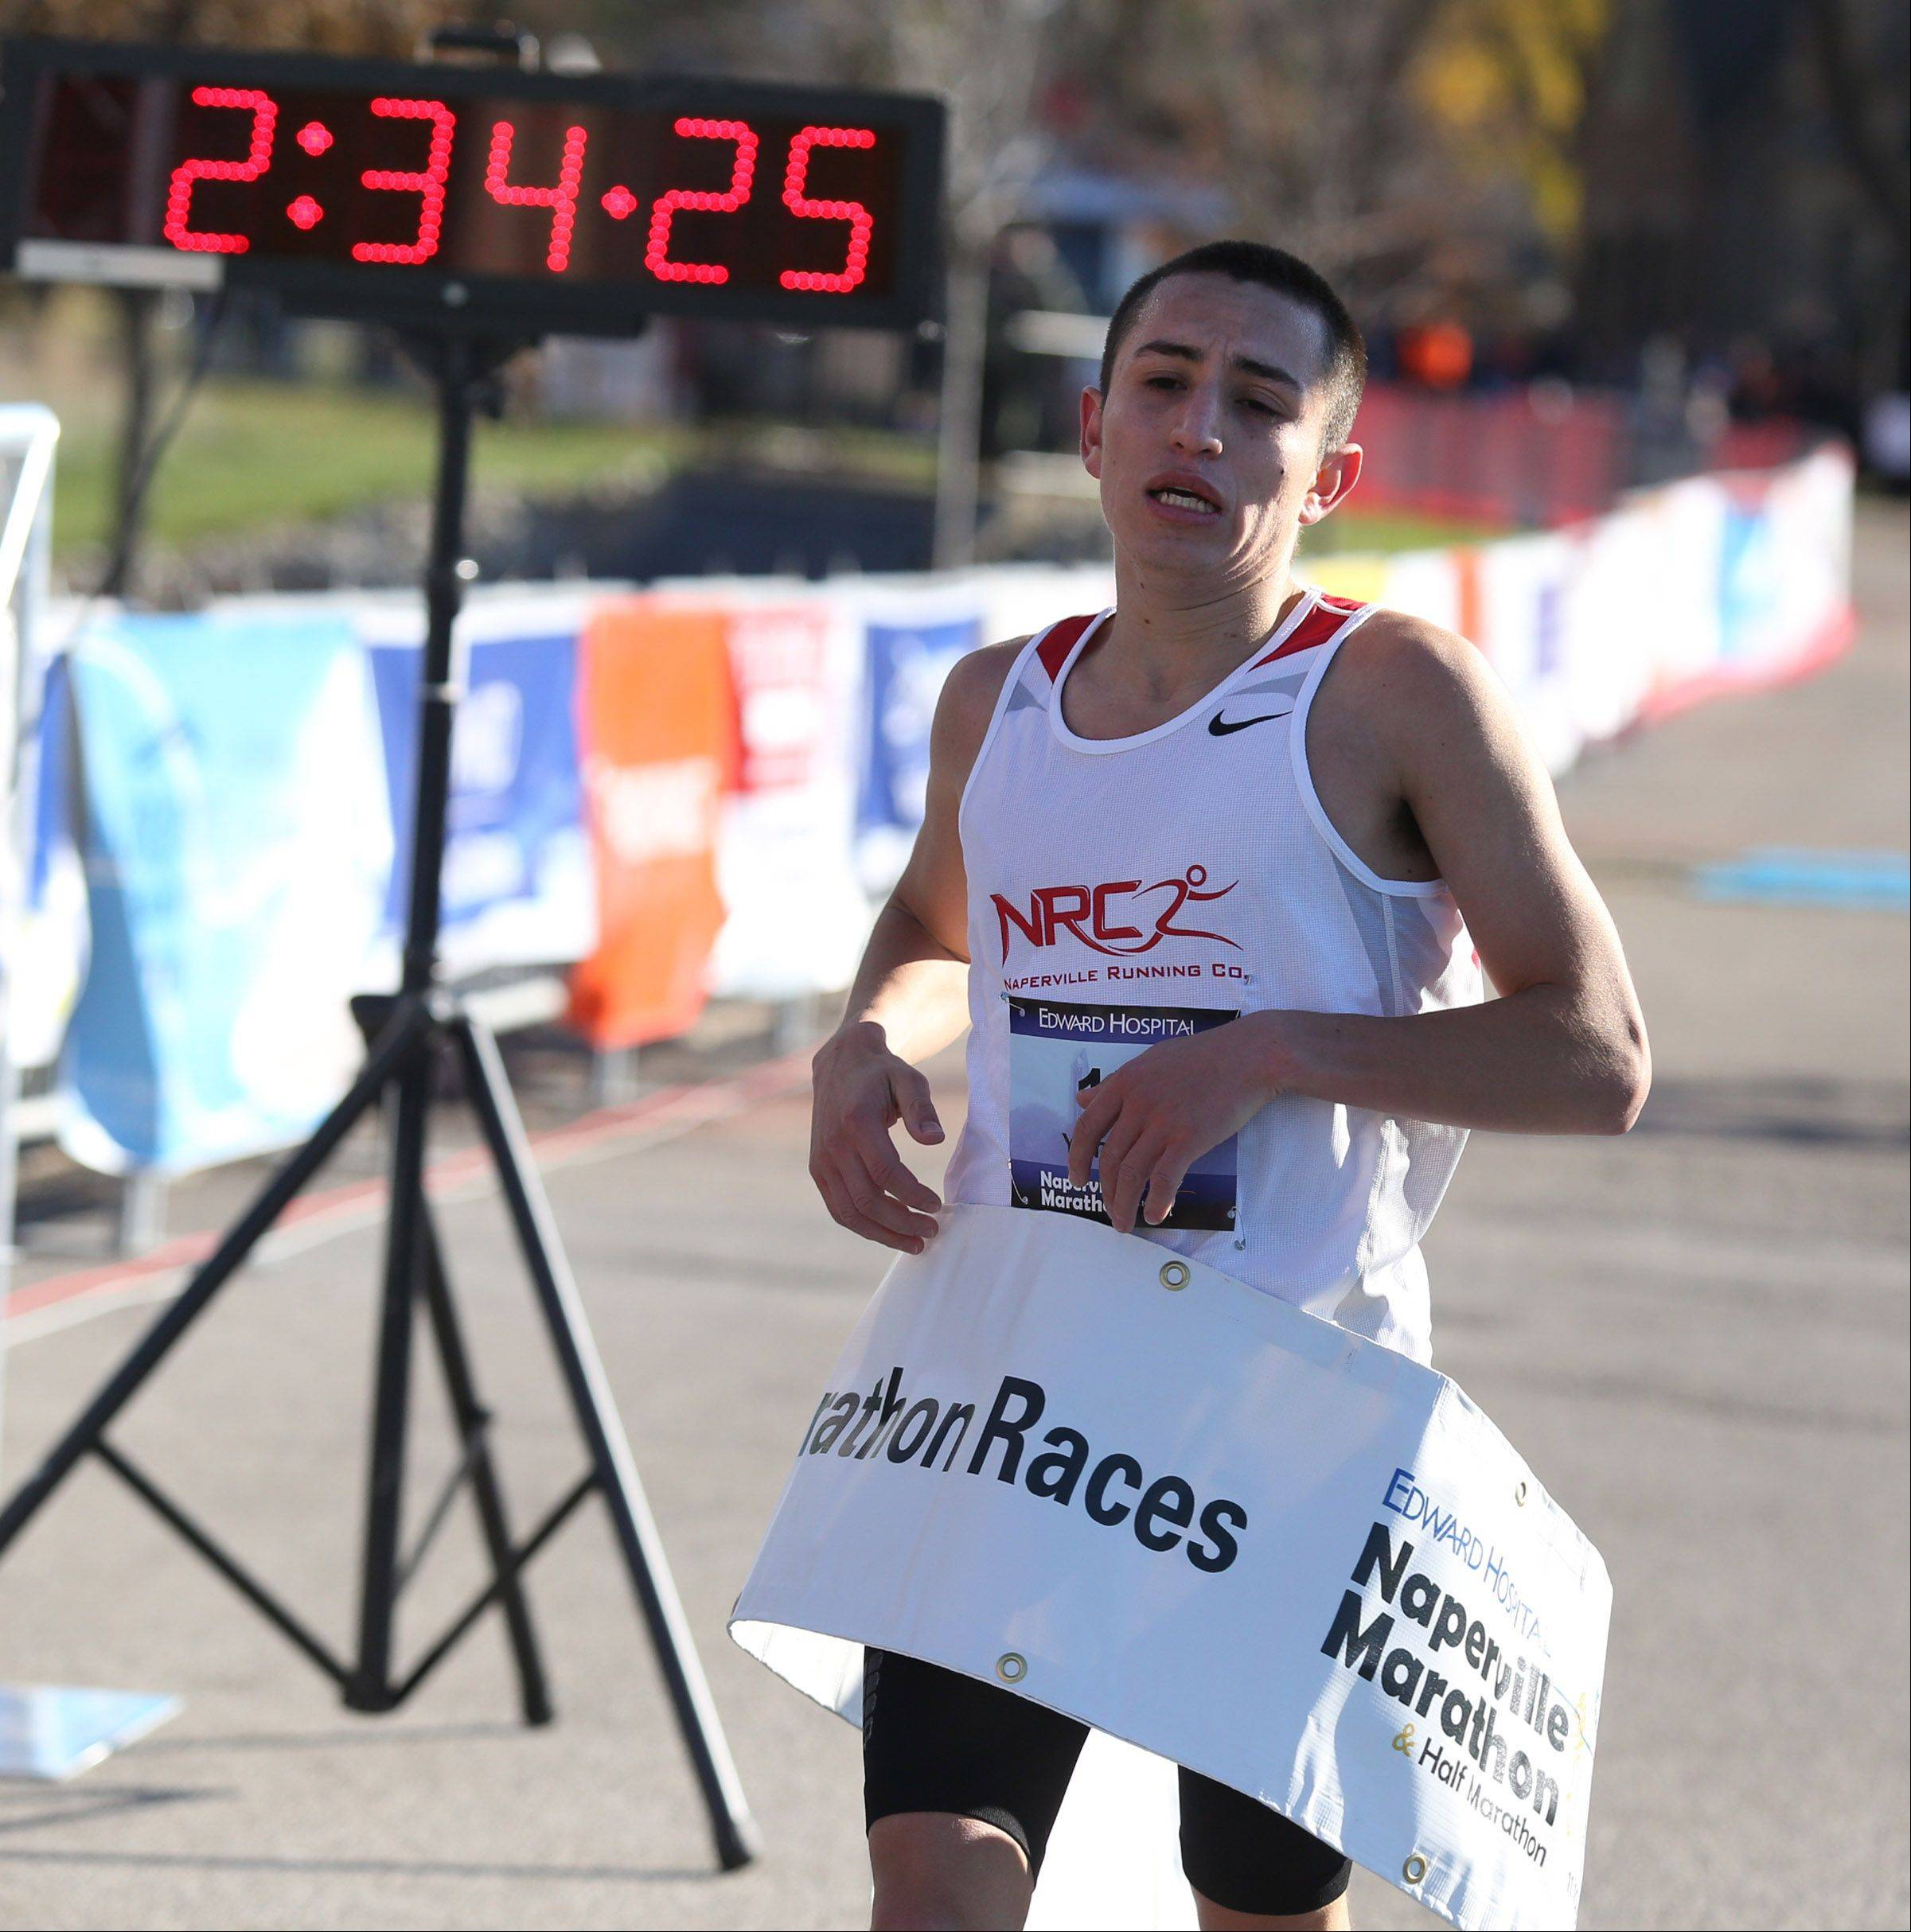 Yonatan Mascote of Naperville crossing the finish line first in the Edward Hospital Naperville Marathon on Sunday, November 10, 2013.3.